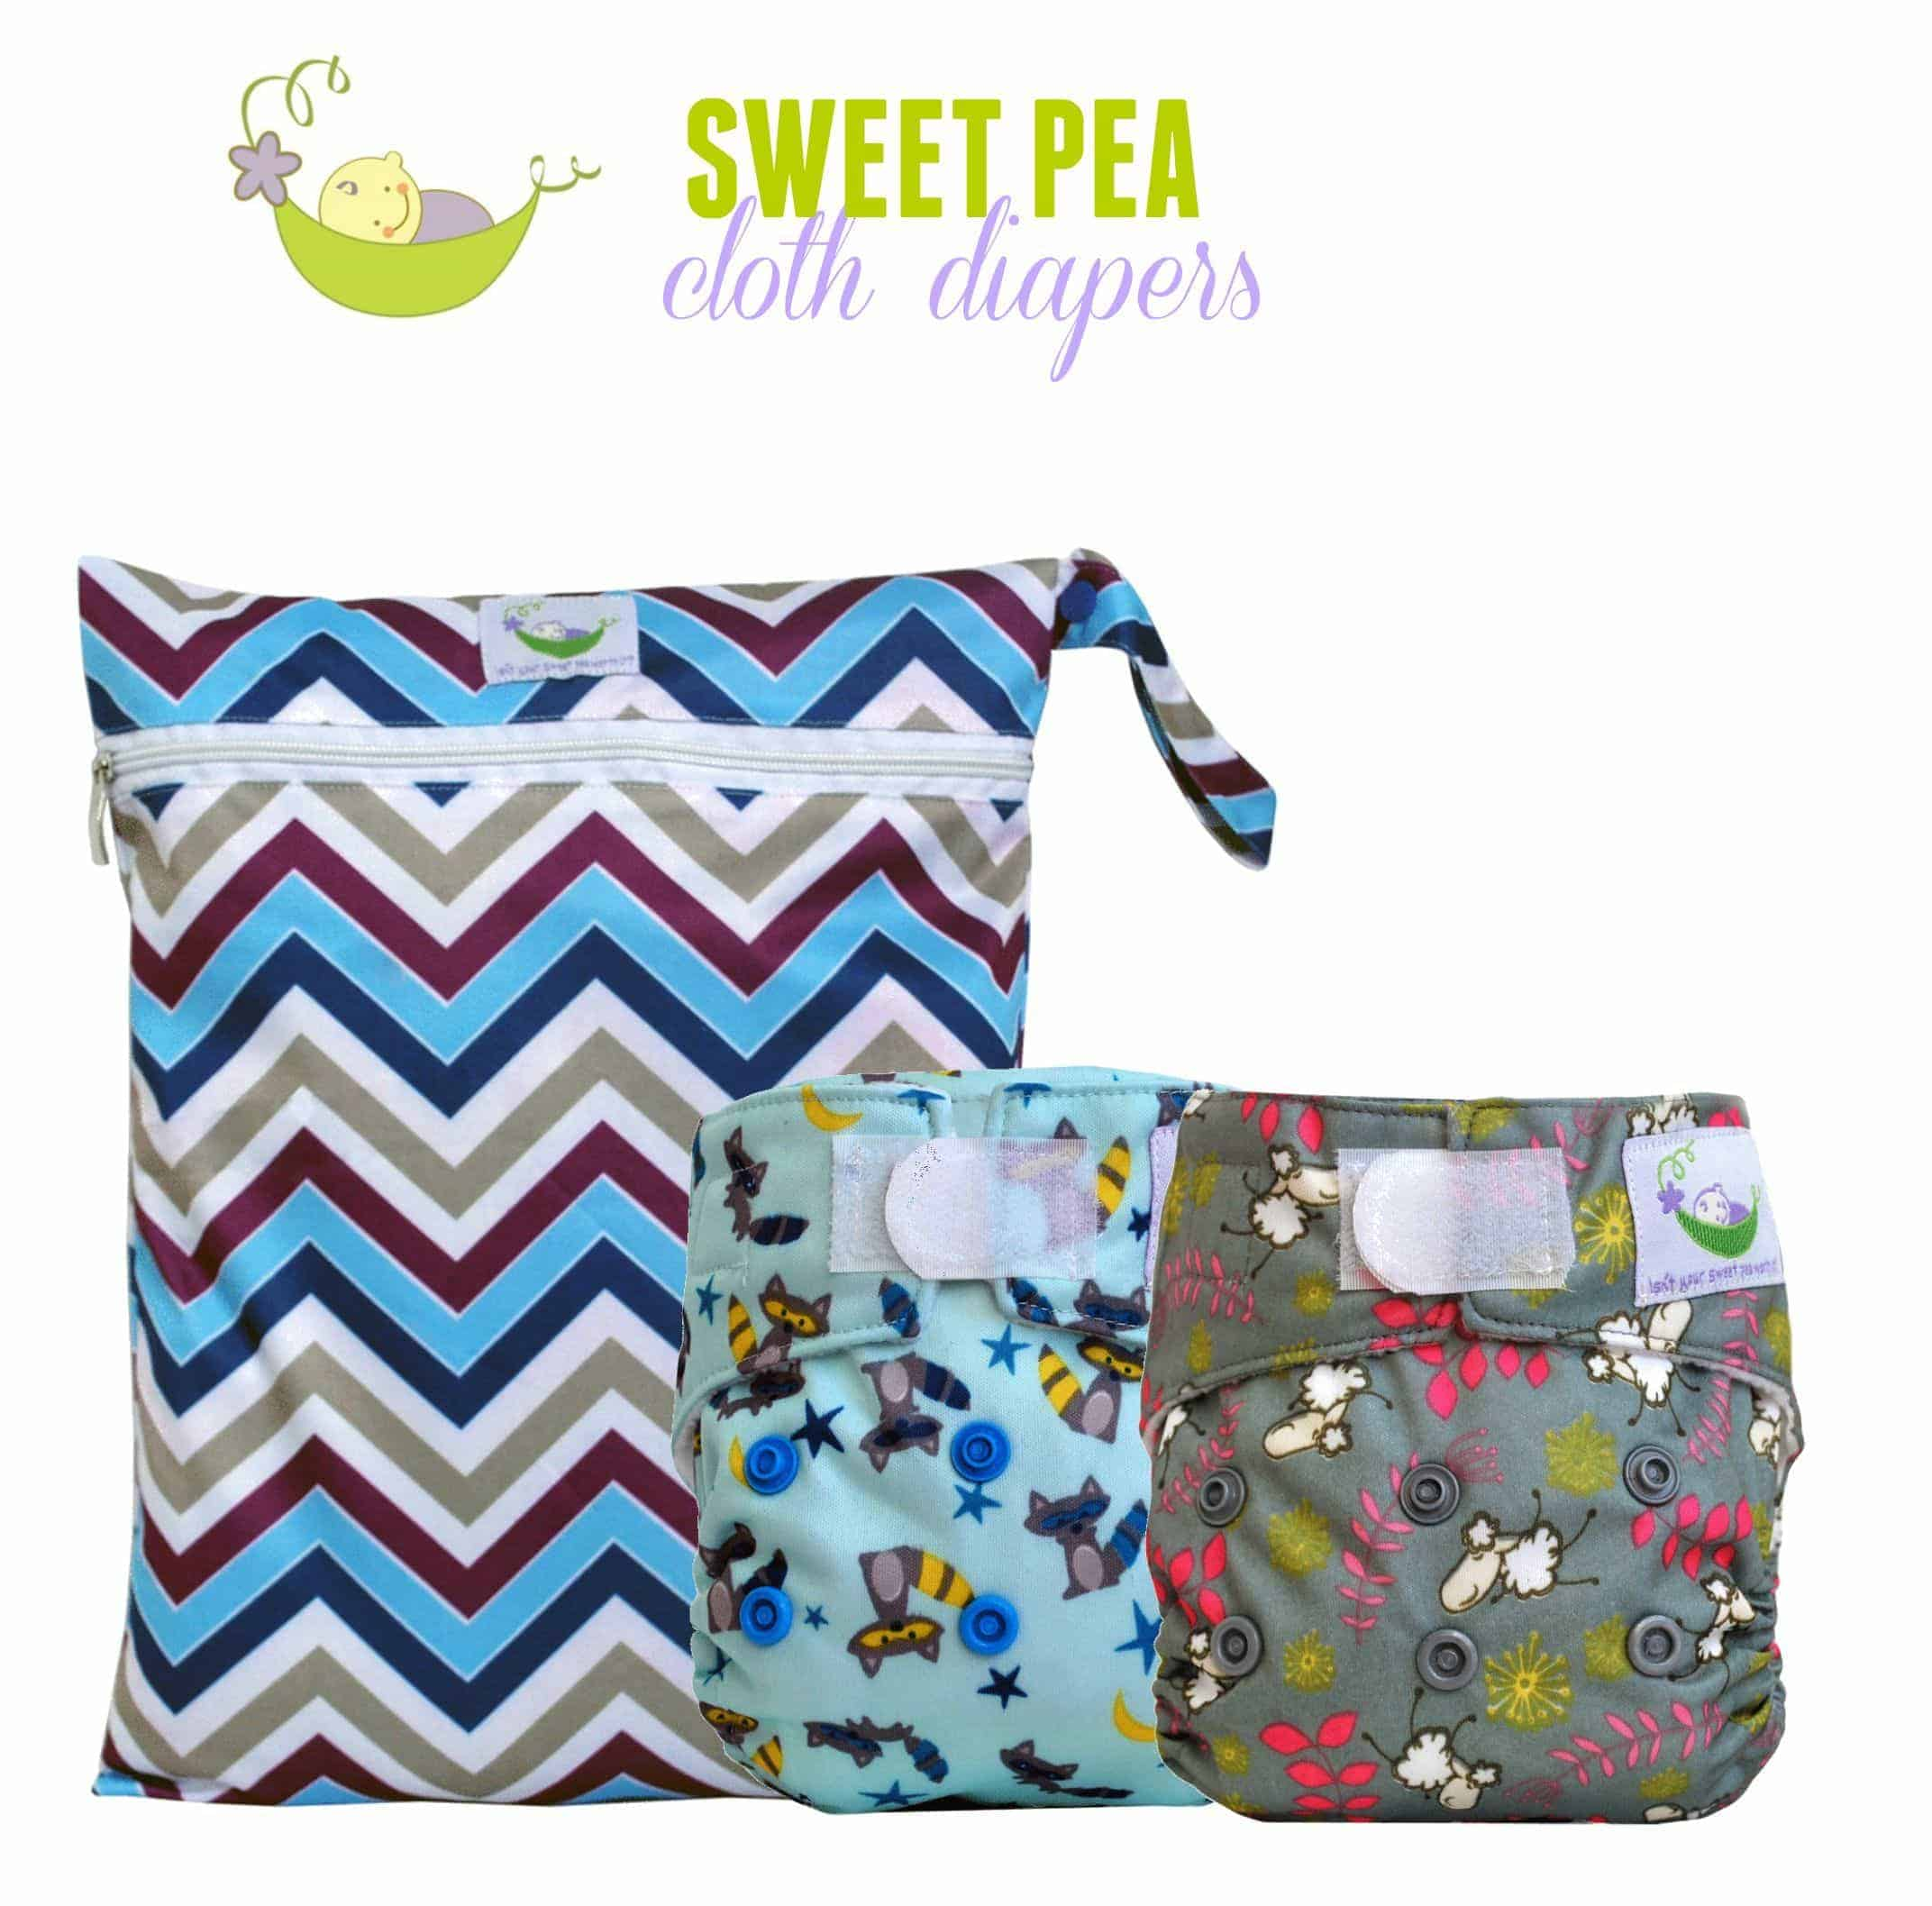 Sweet Pea newborn cloth diaper & wet bag review